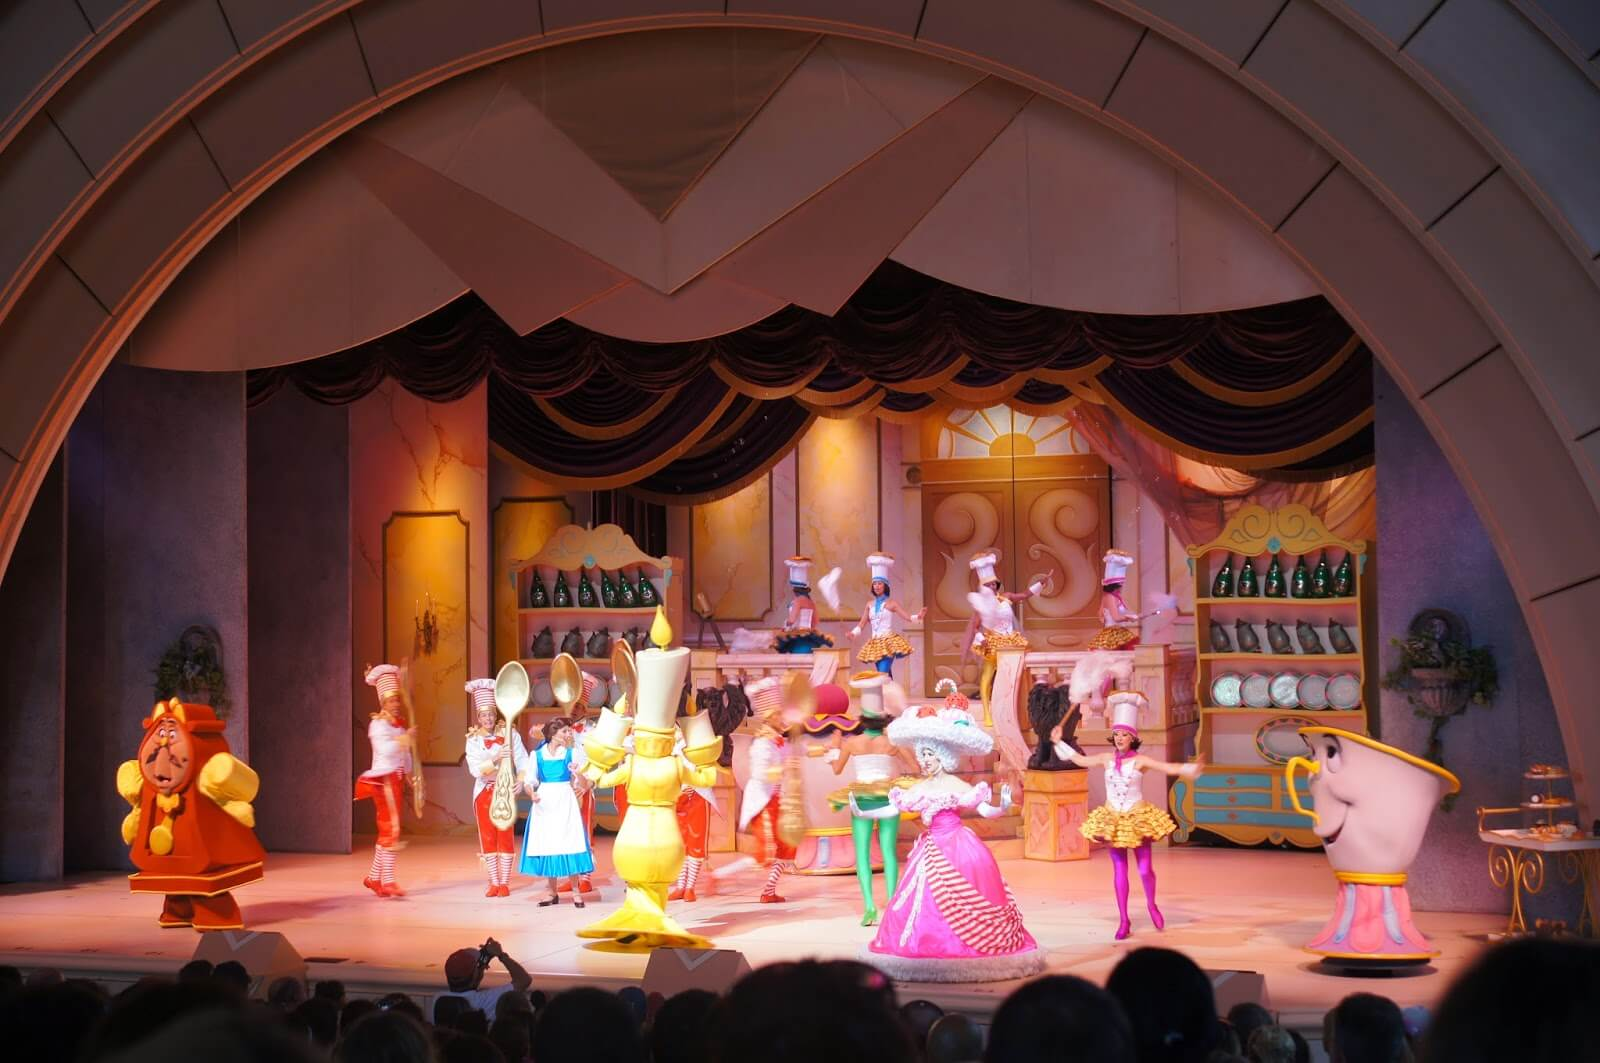 Beauty and the Beast Live on Stage show at Hollywood Studios is amazing!